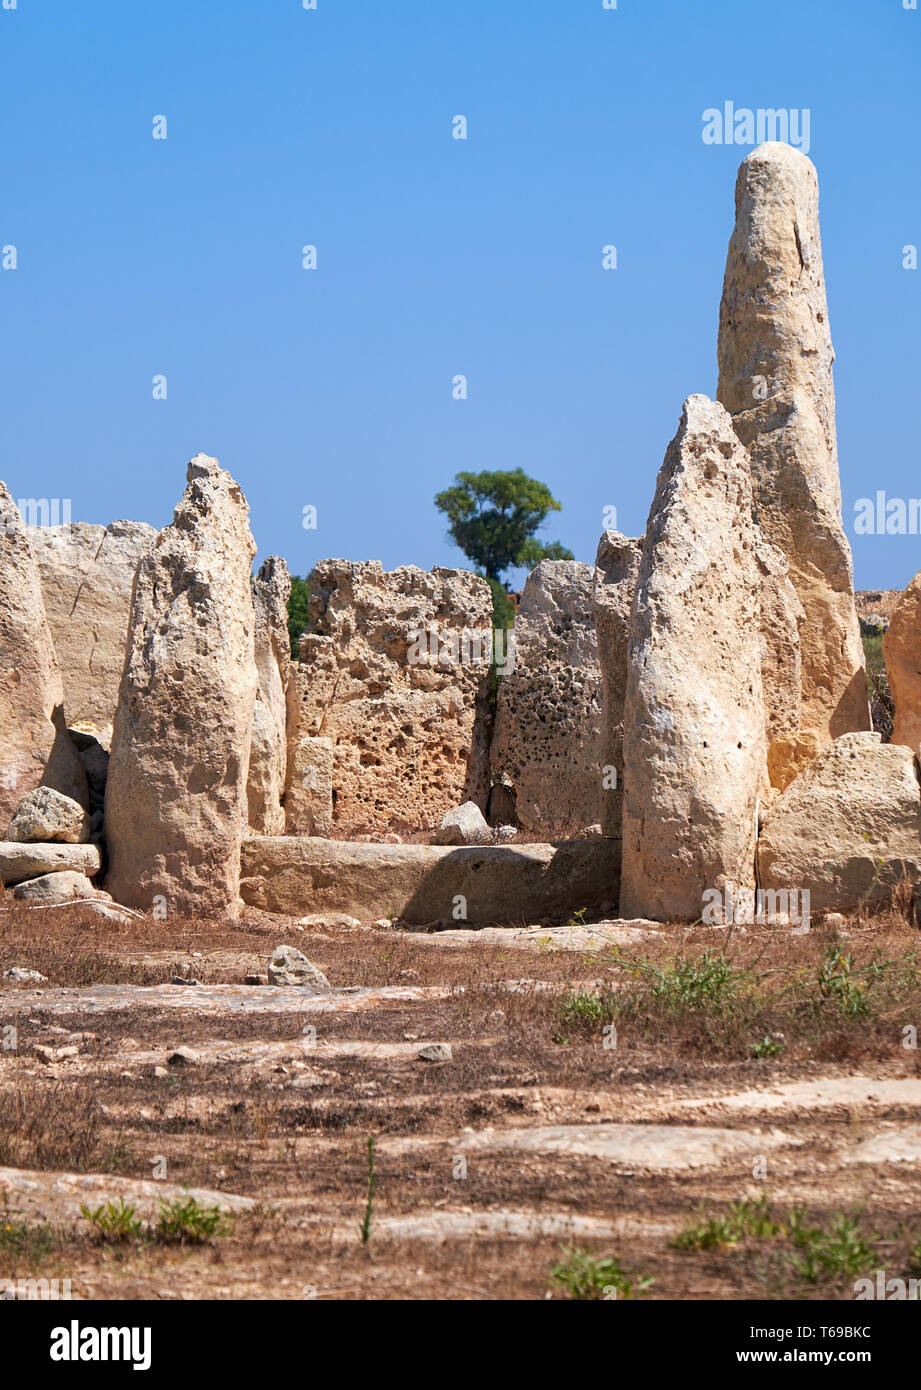 The orthostats forming the entrance to the Northen temple of Hagar Qim, Malta Stock Photo